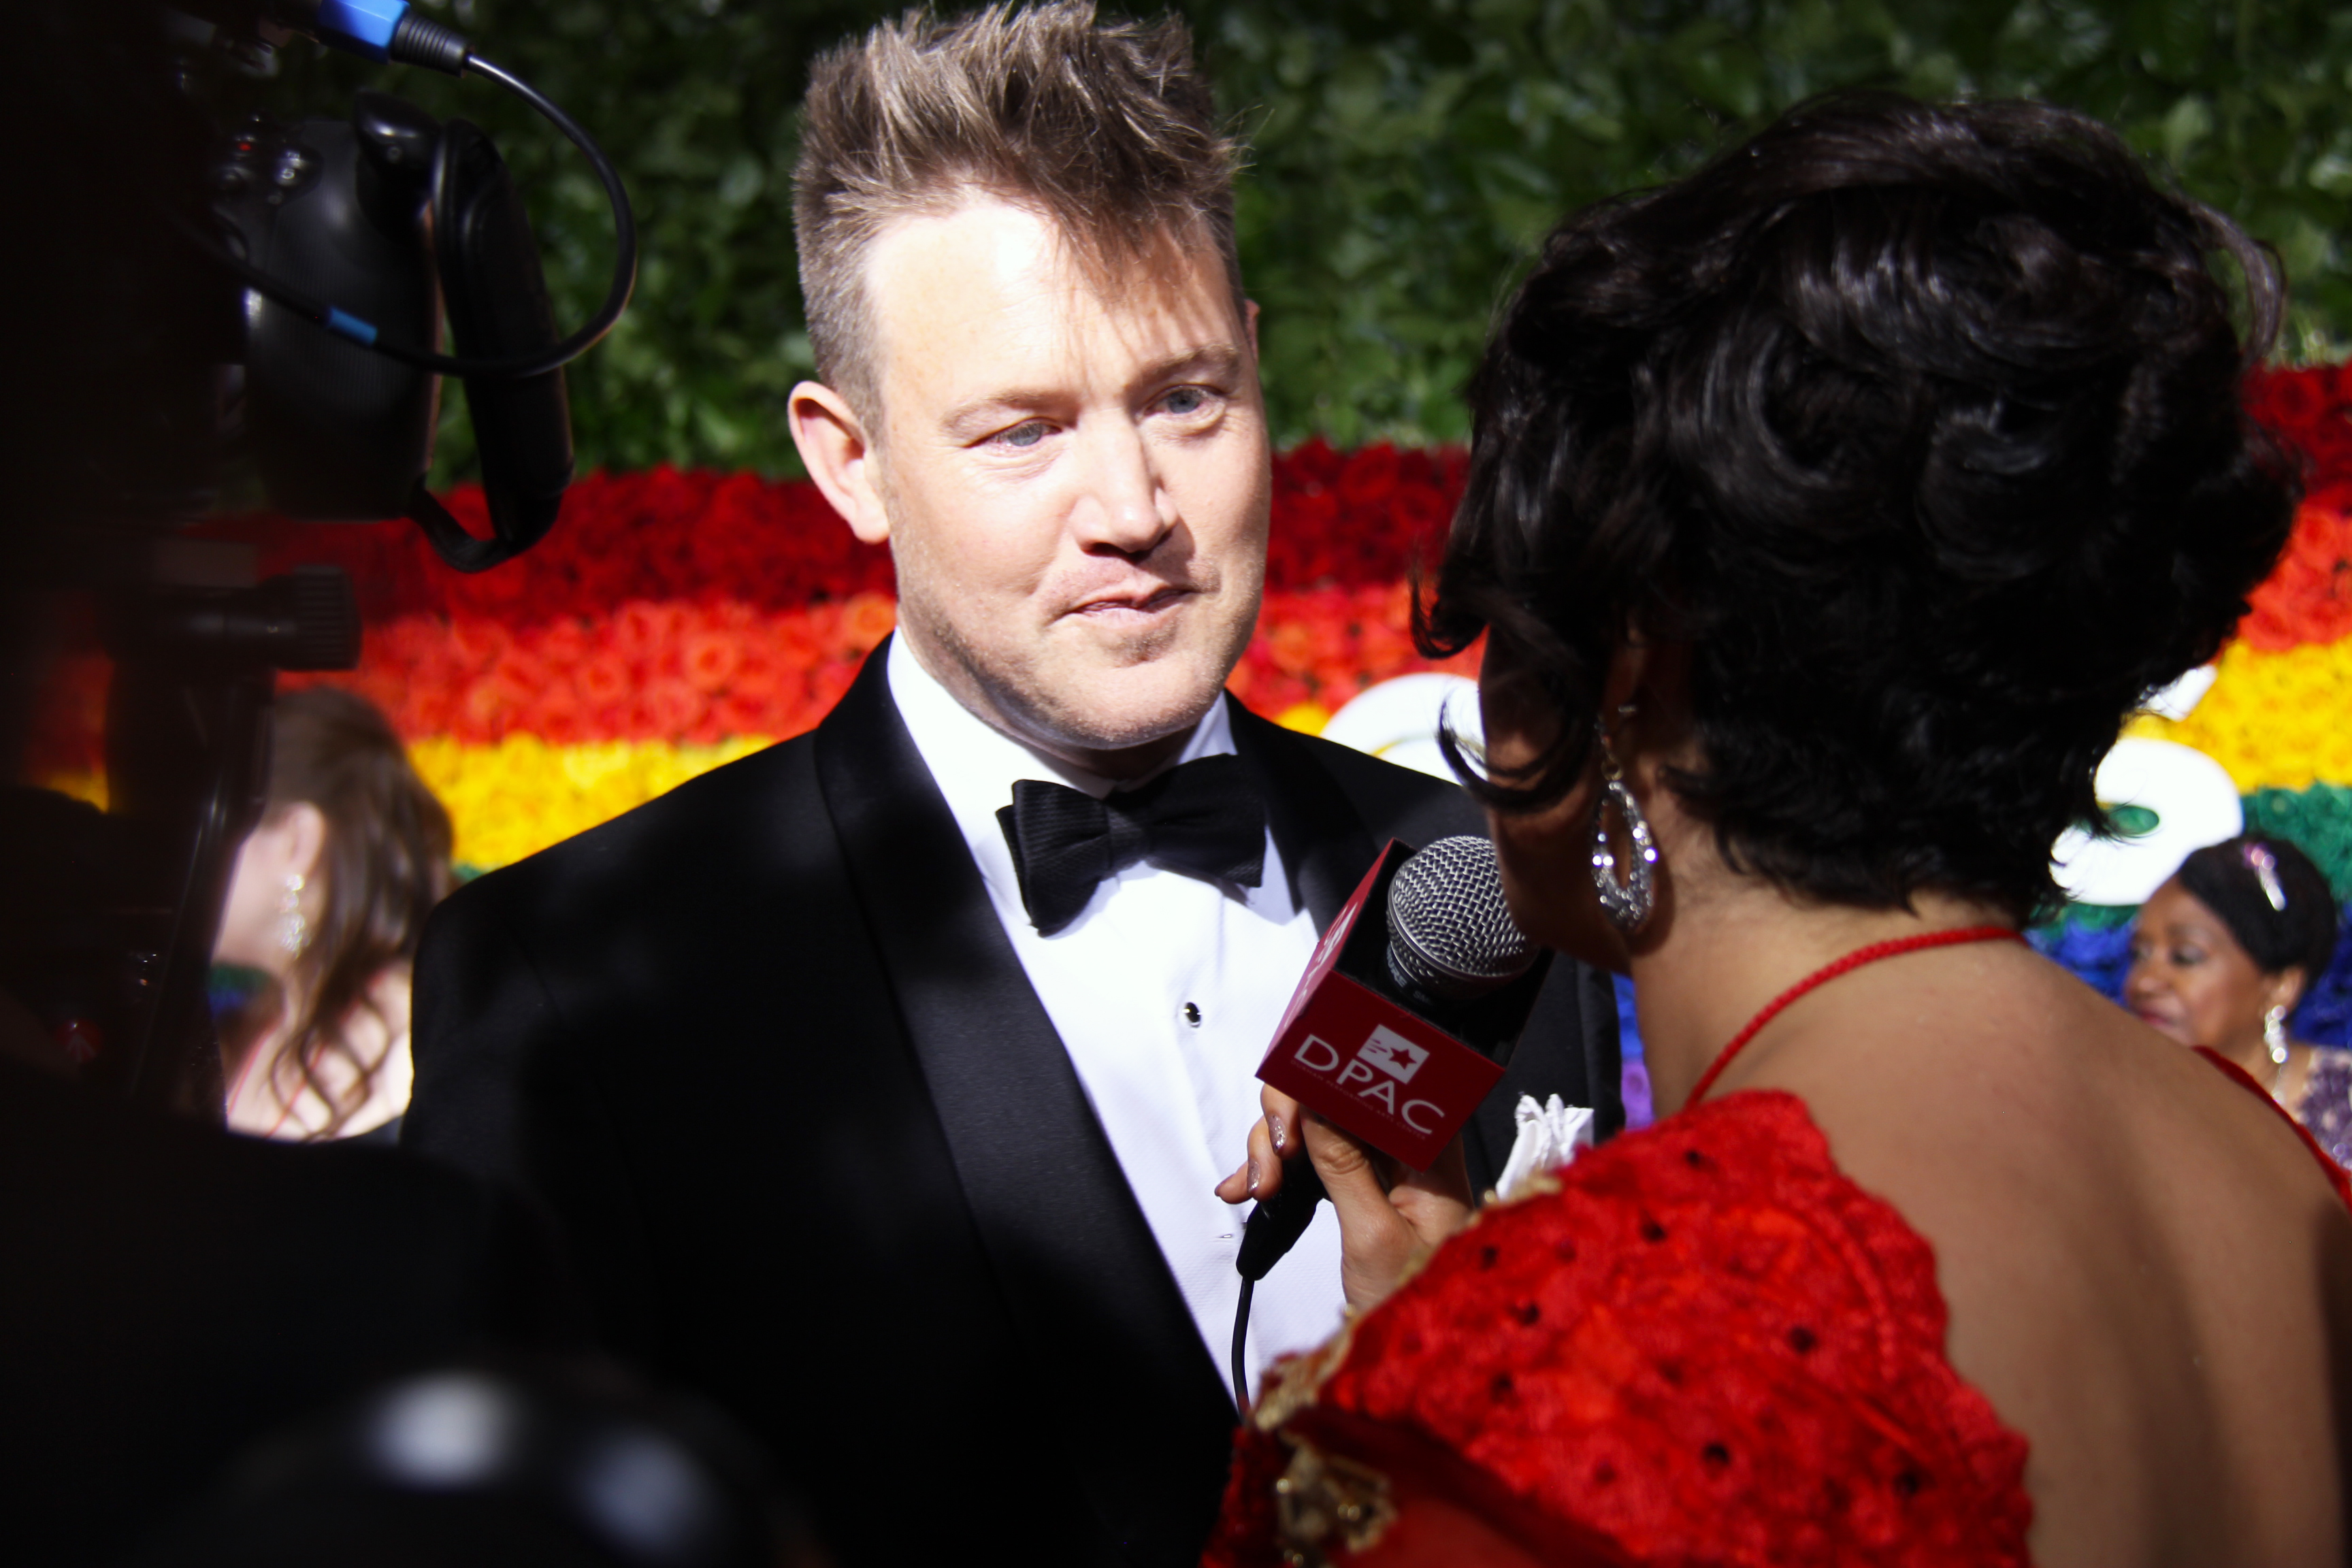 Eddie Perfect from <i>Beetlejuice</i> on the red carpet. Photo by Broadway Direct.